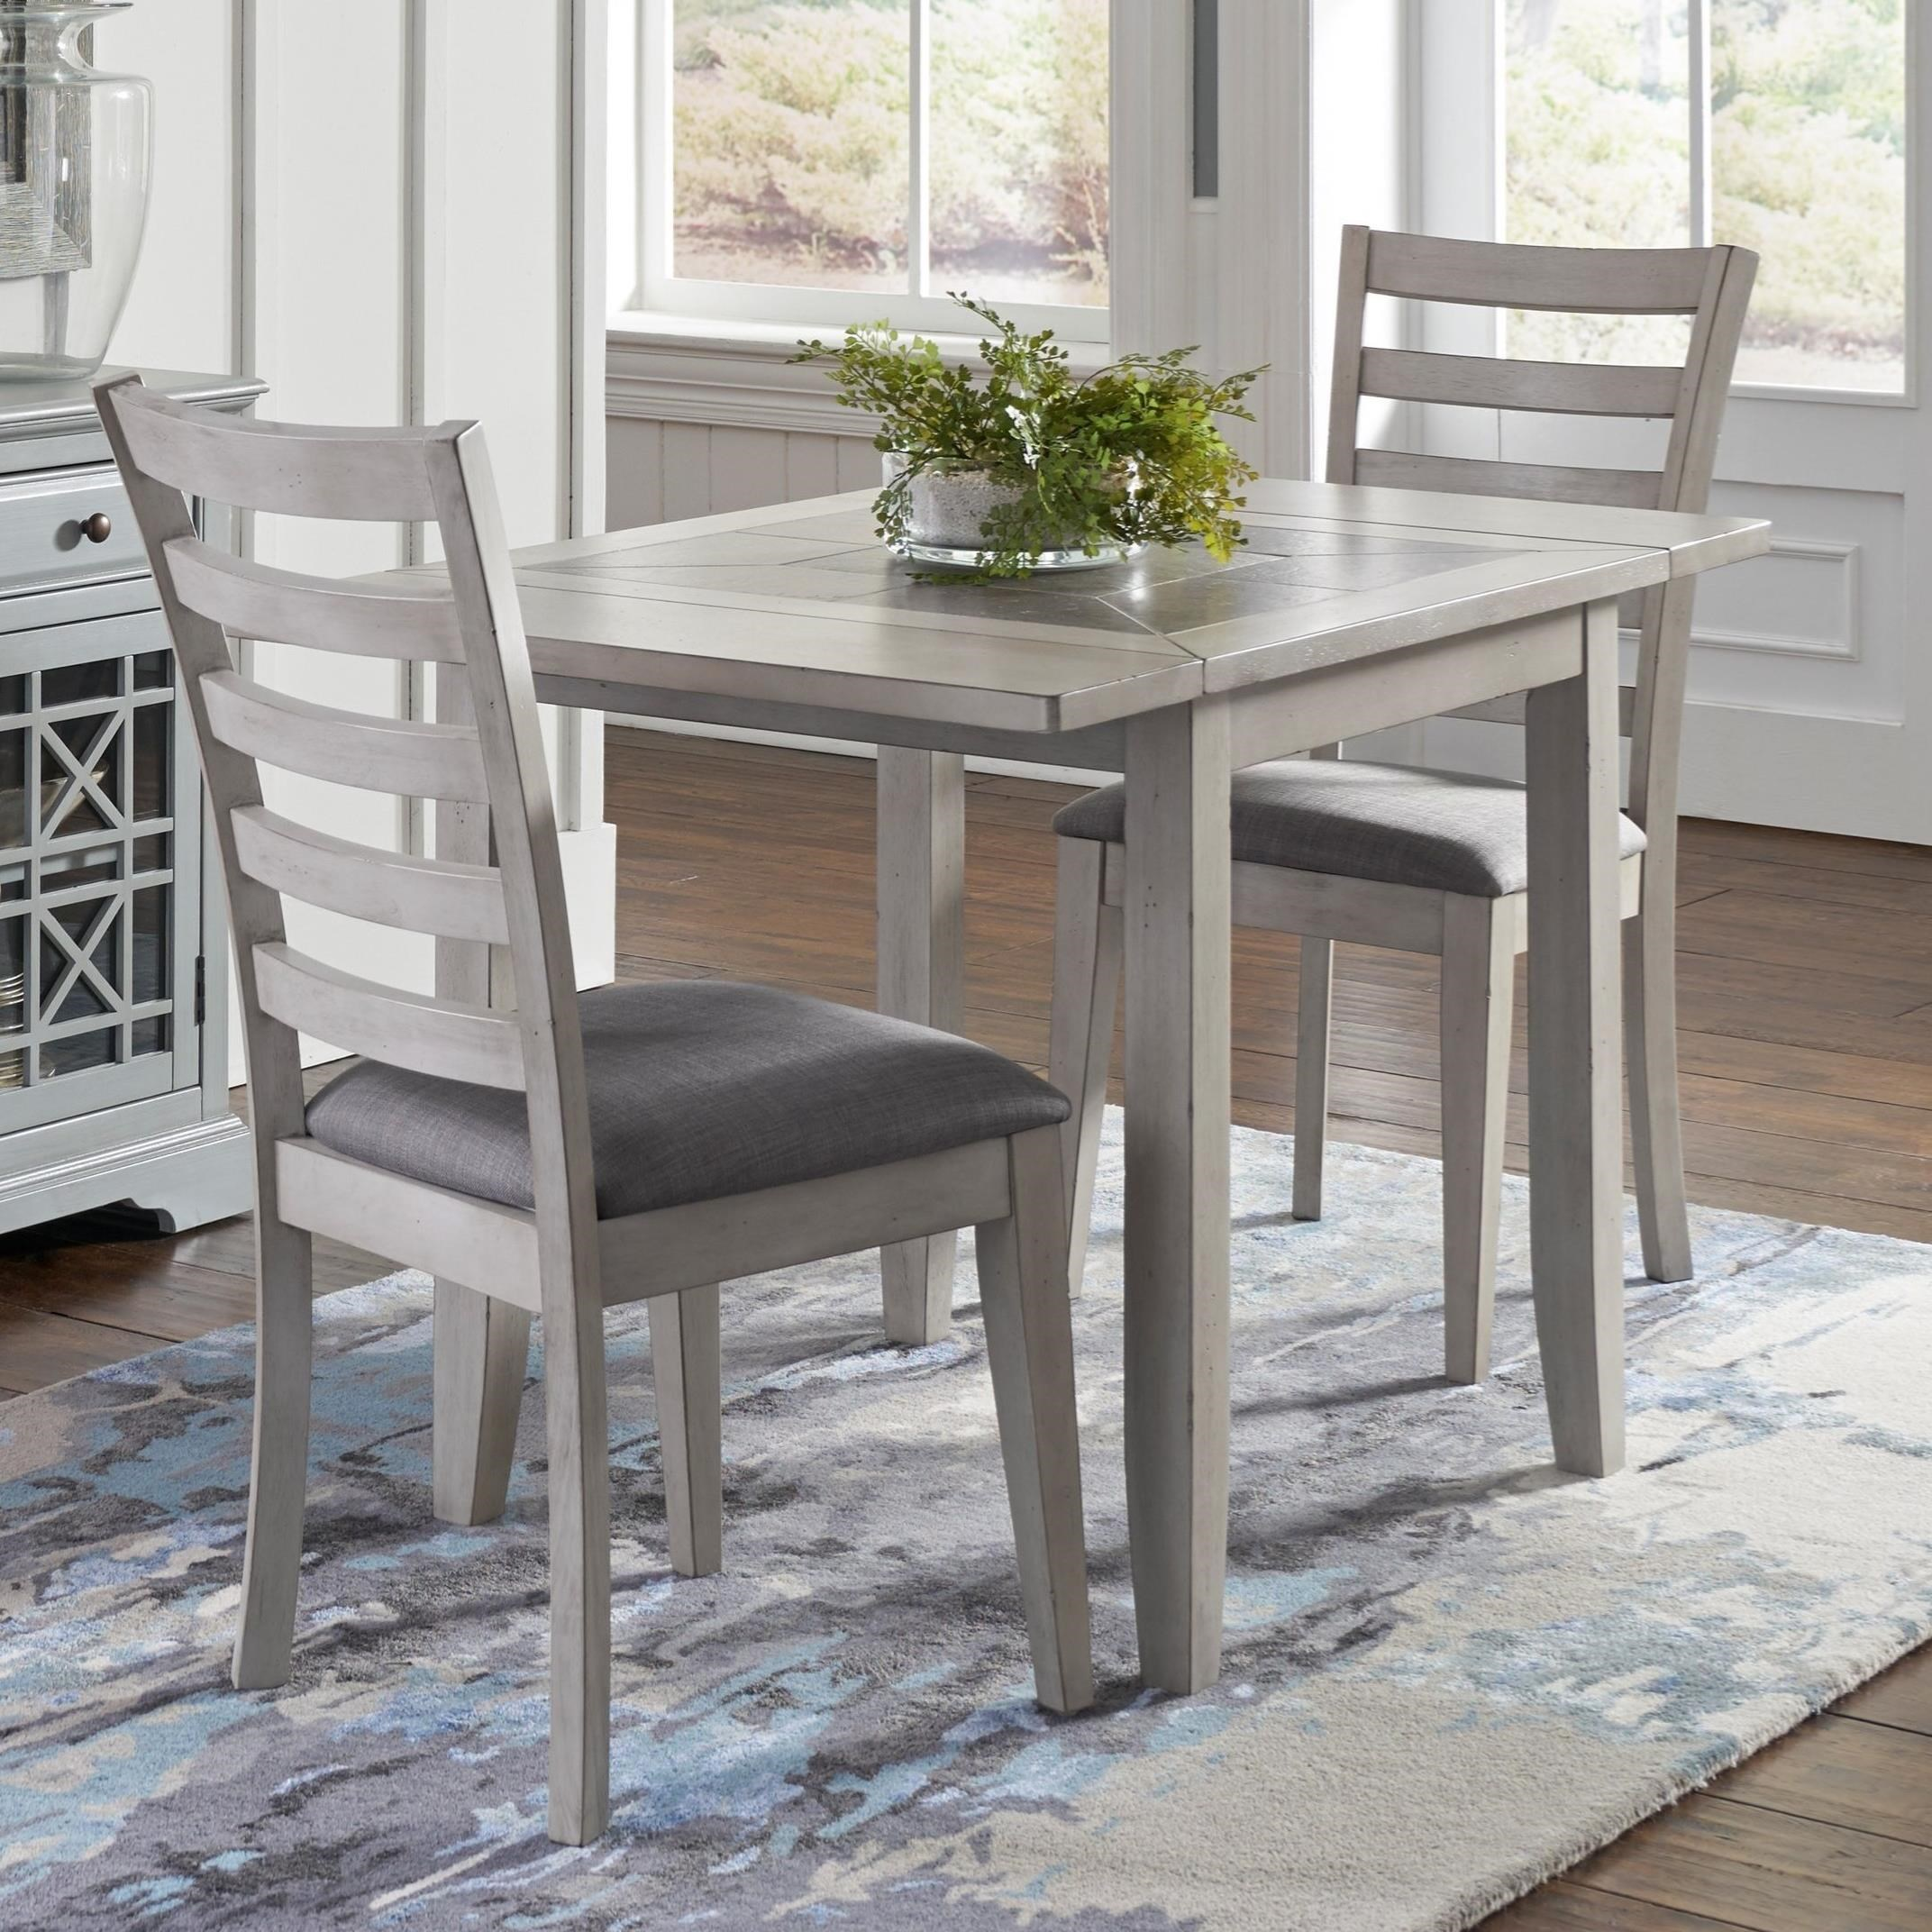 Drop Leaf Table and 2 Chair Set